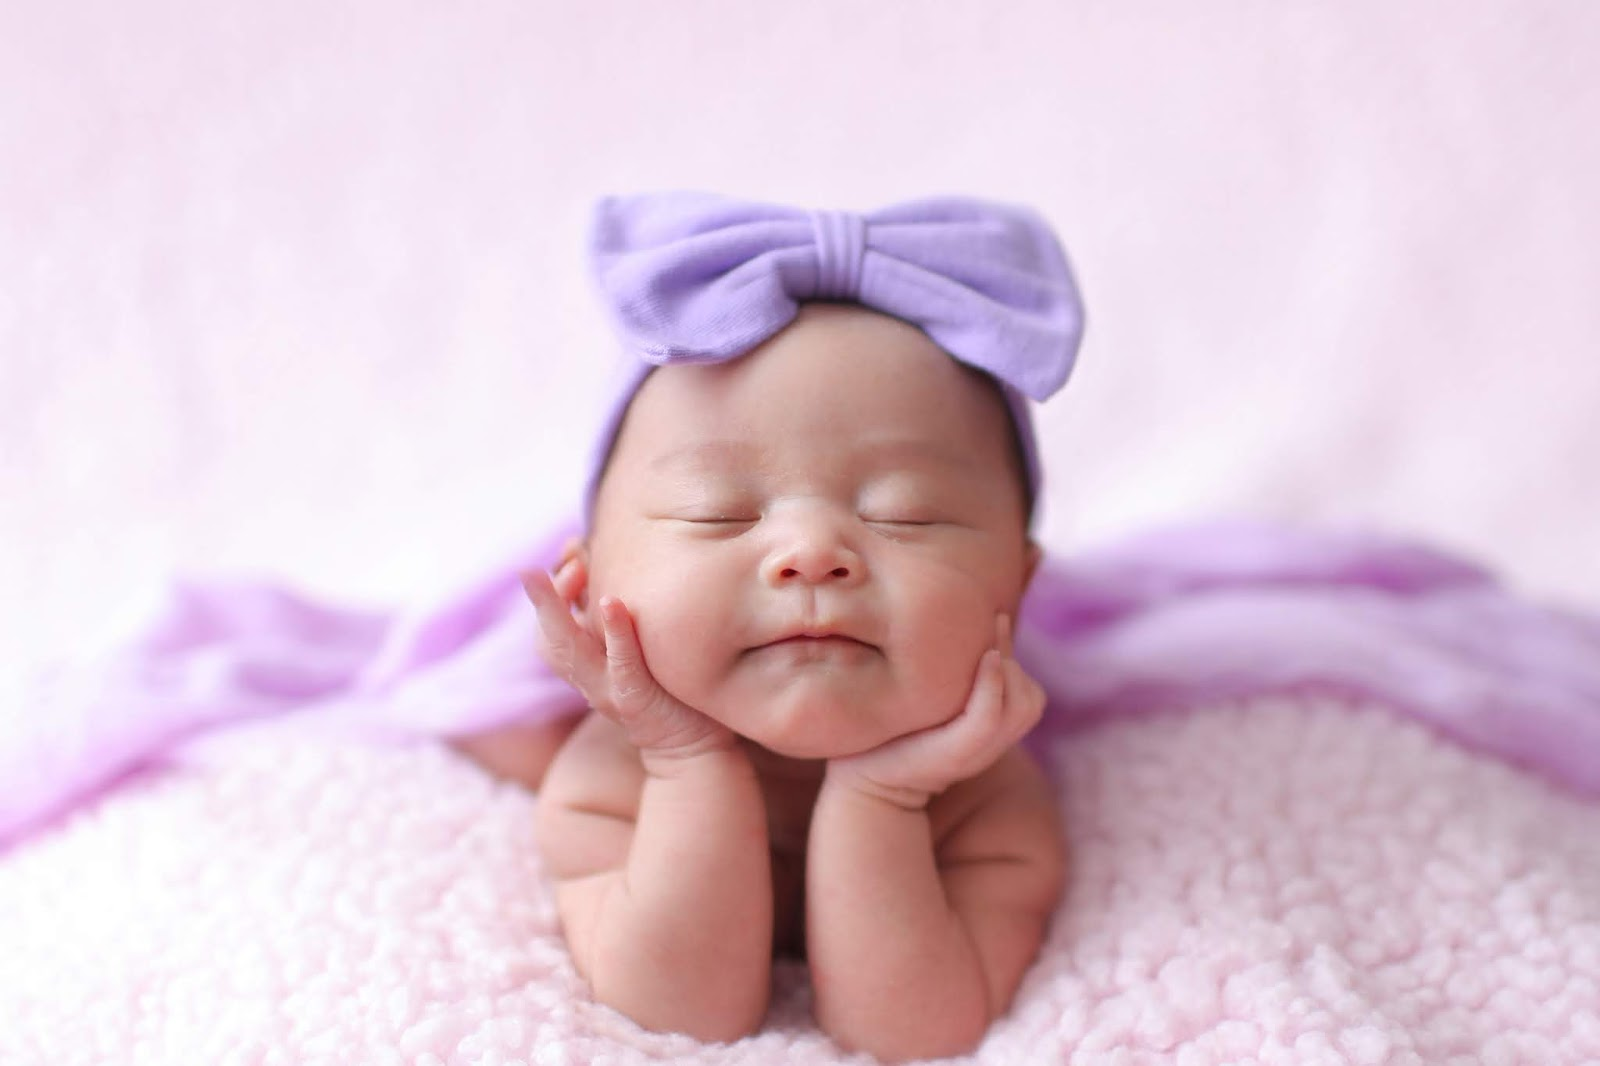 Keias newborn pictorial and what you need to know about newborn photography